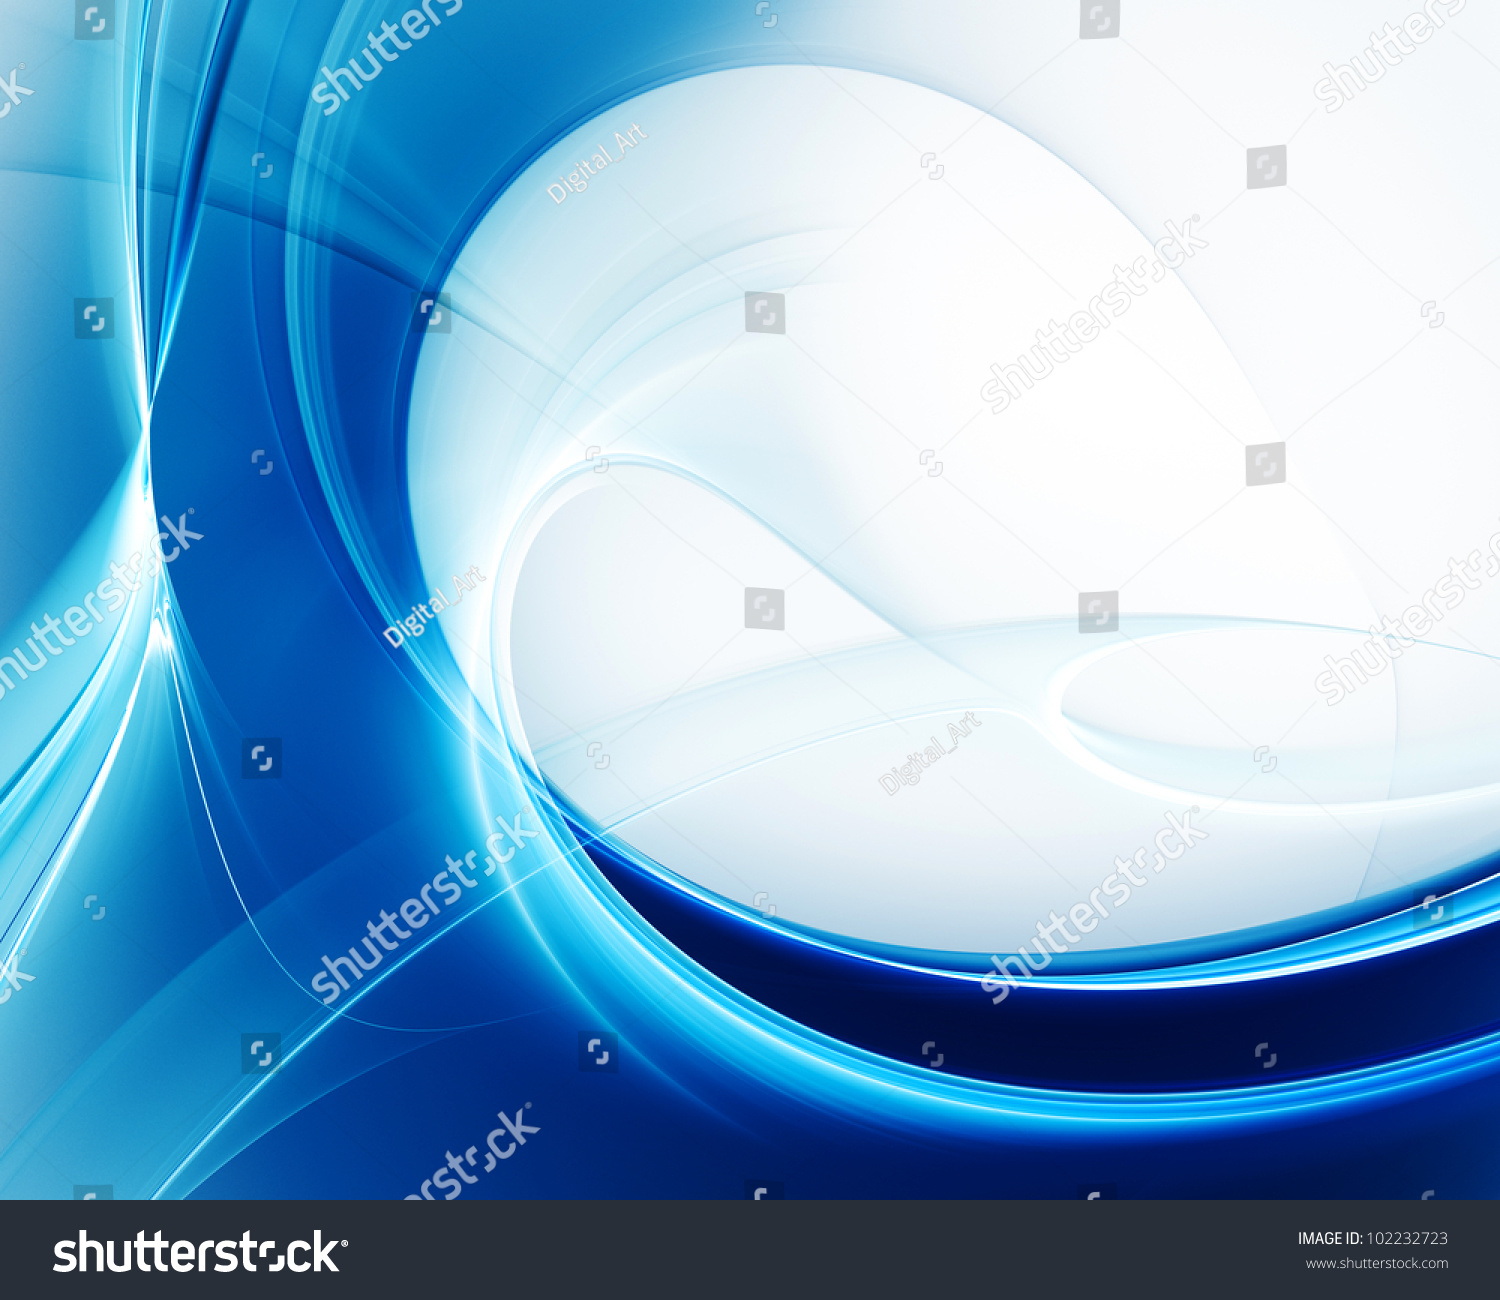 computer graphics abstract background design in blue and